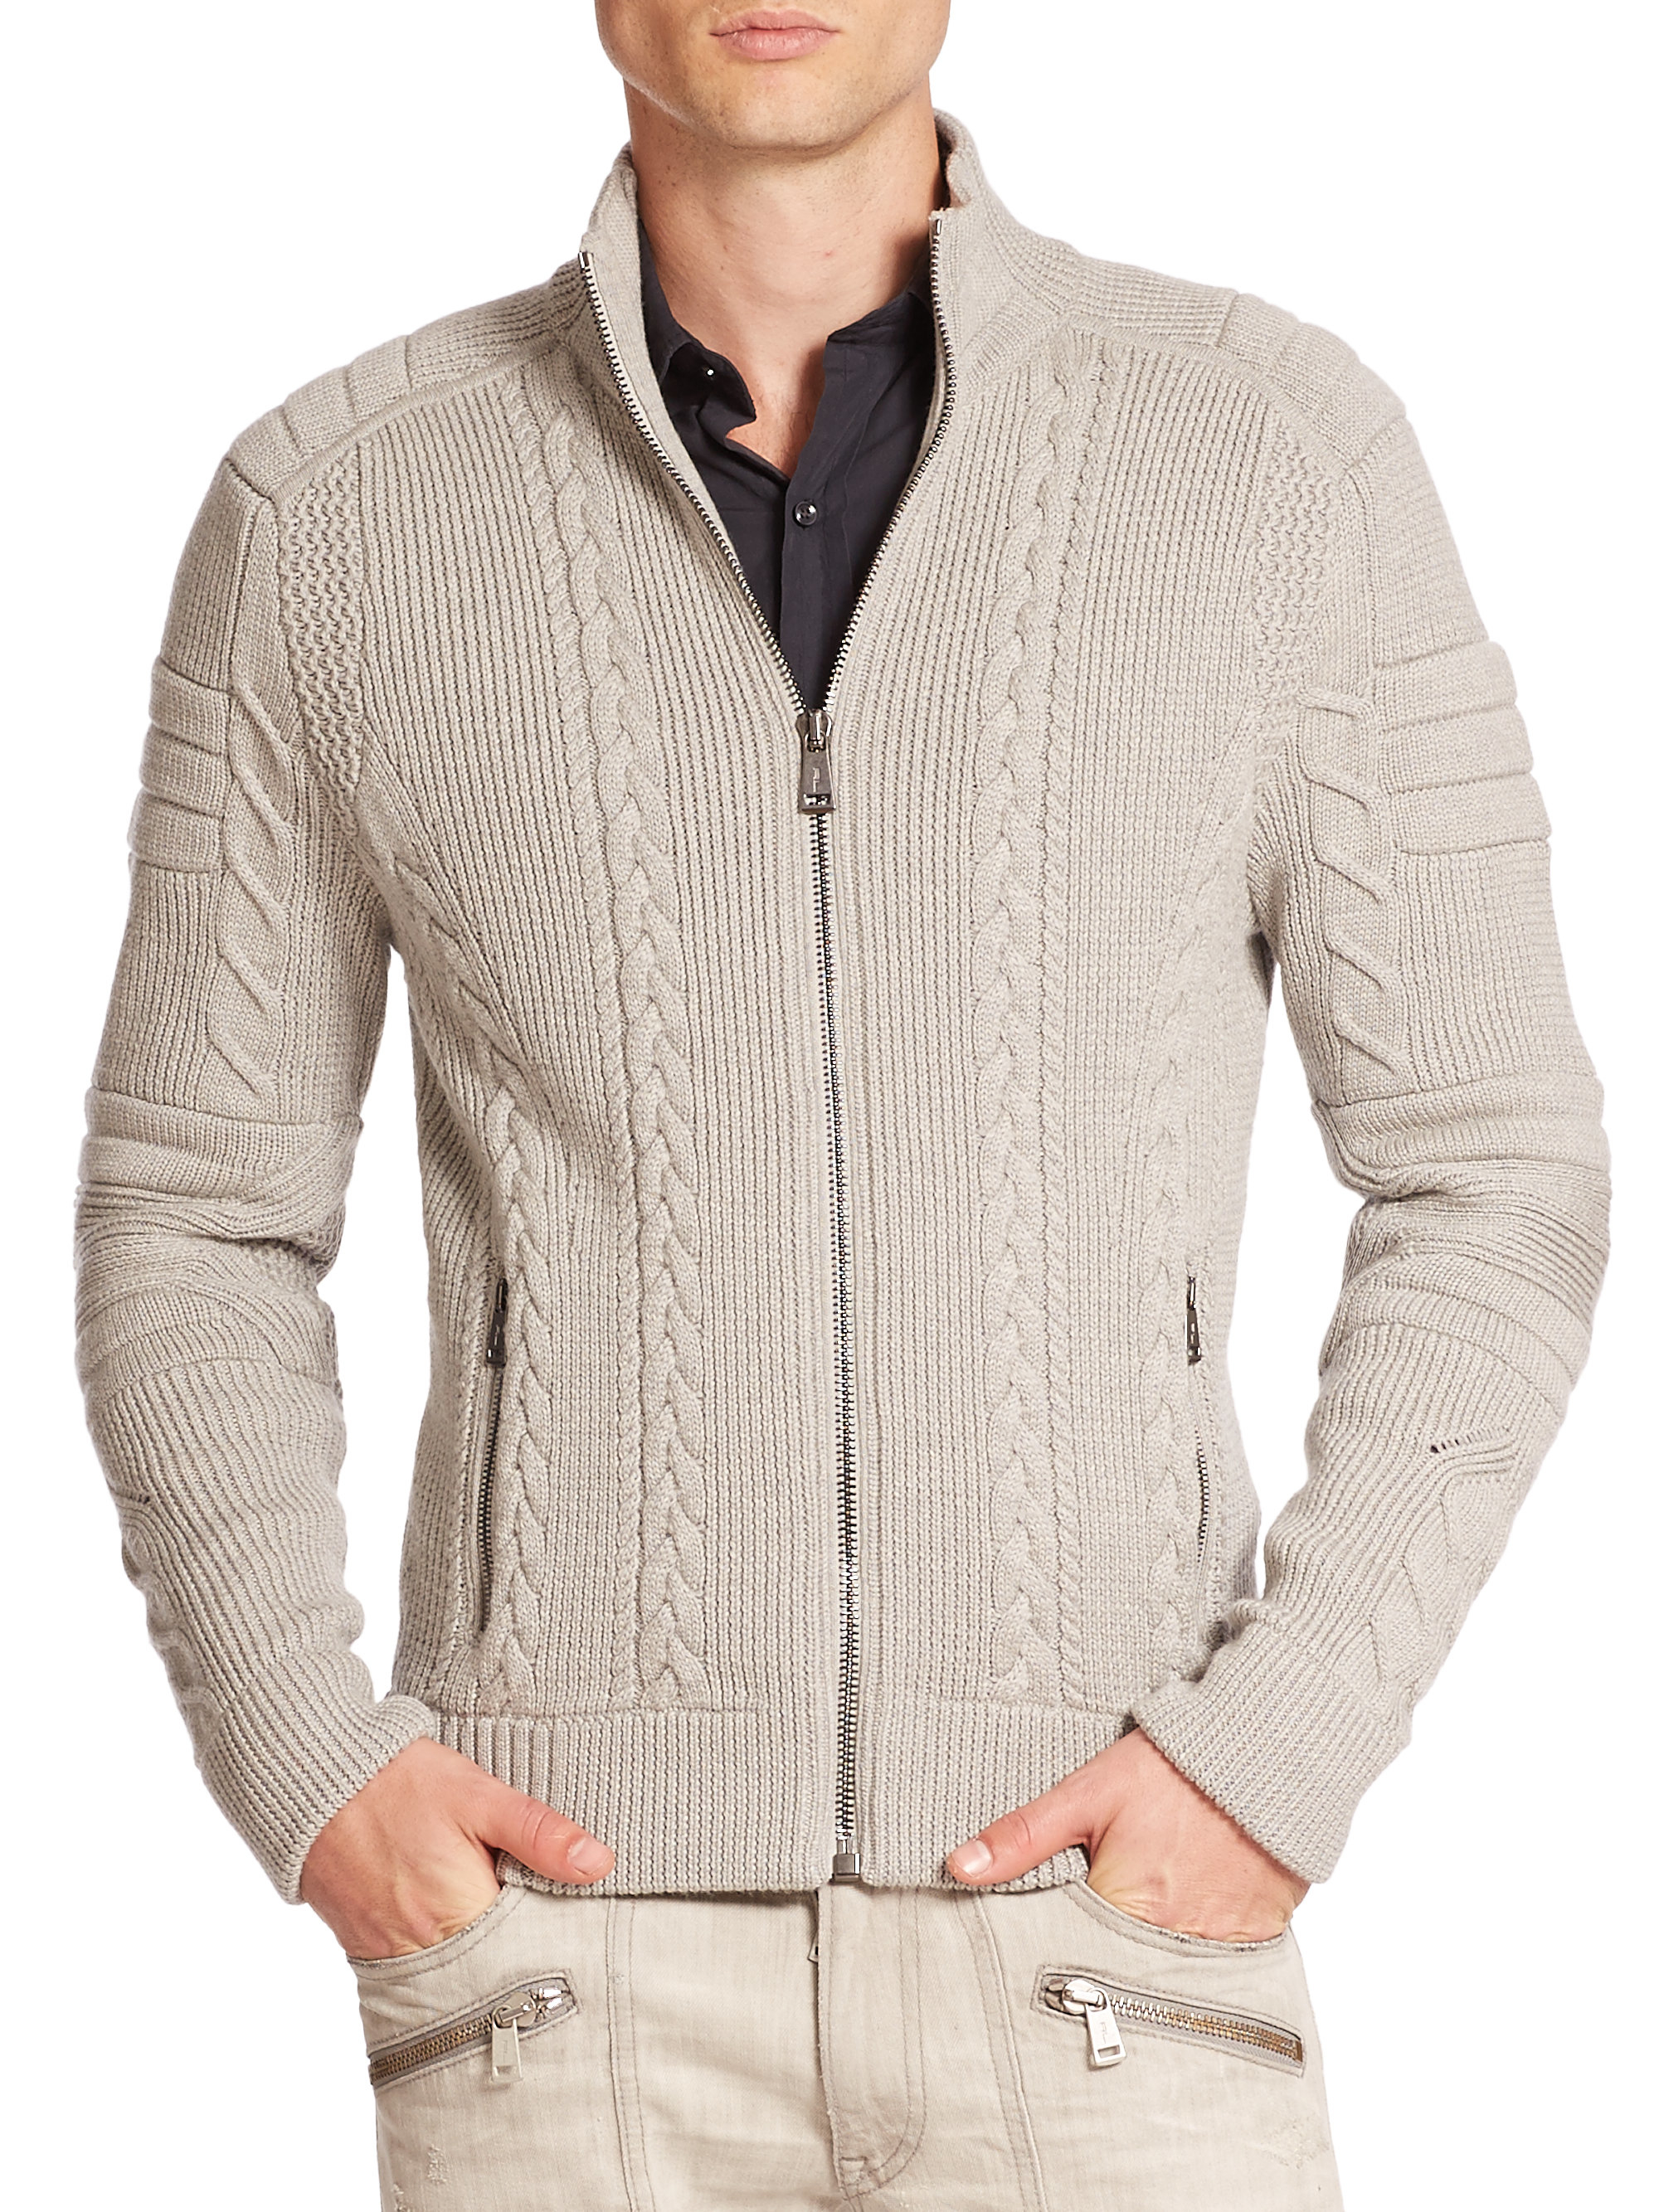 Ralph lauren black label Ribbed Merino Cable-knit Sweater in Gray ...